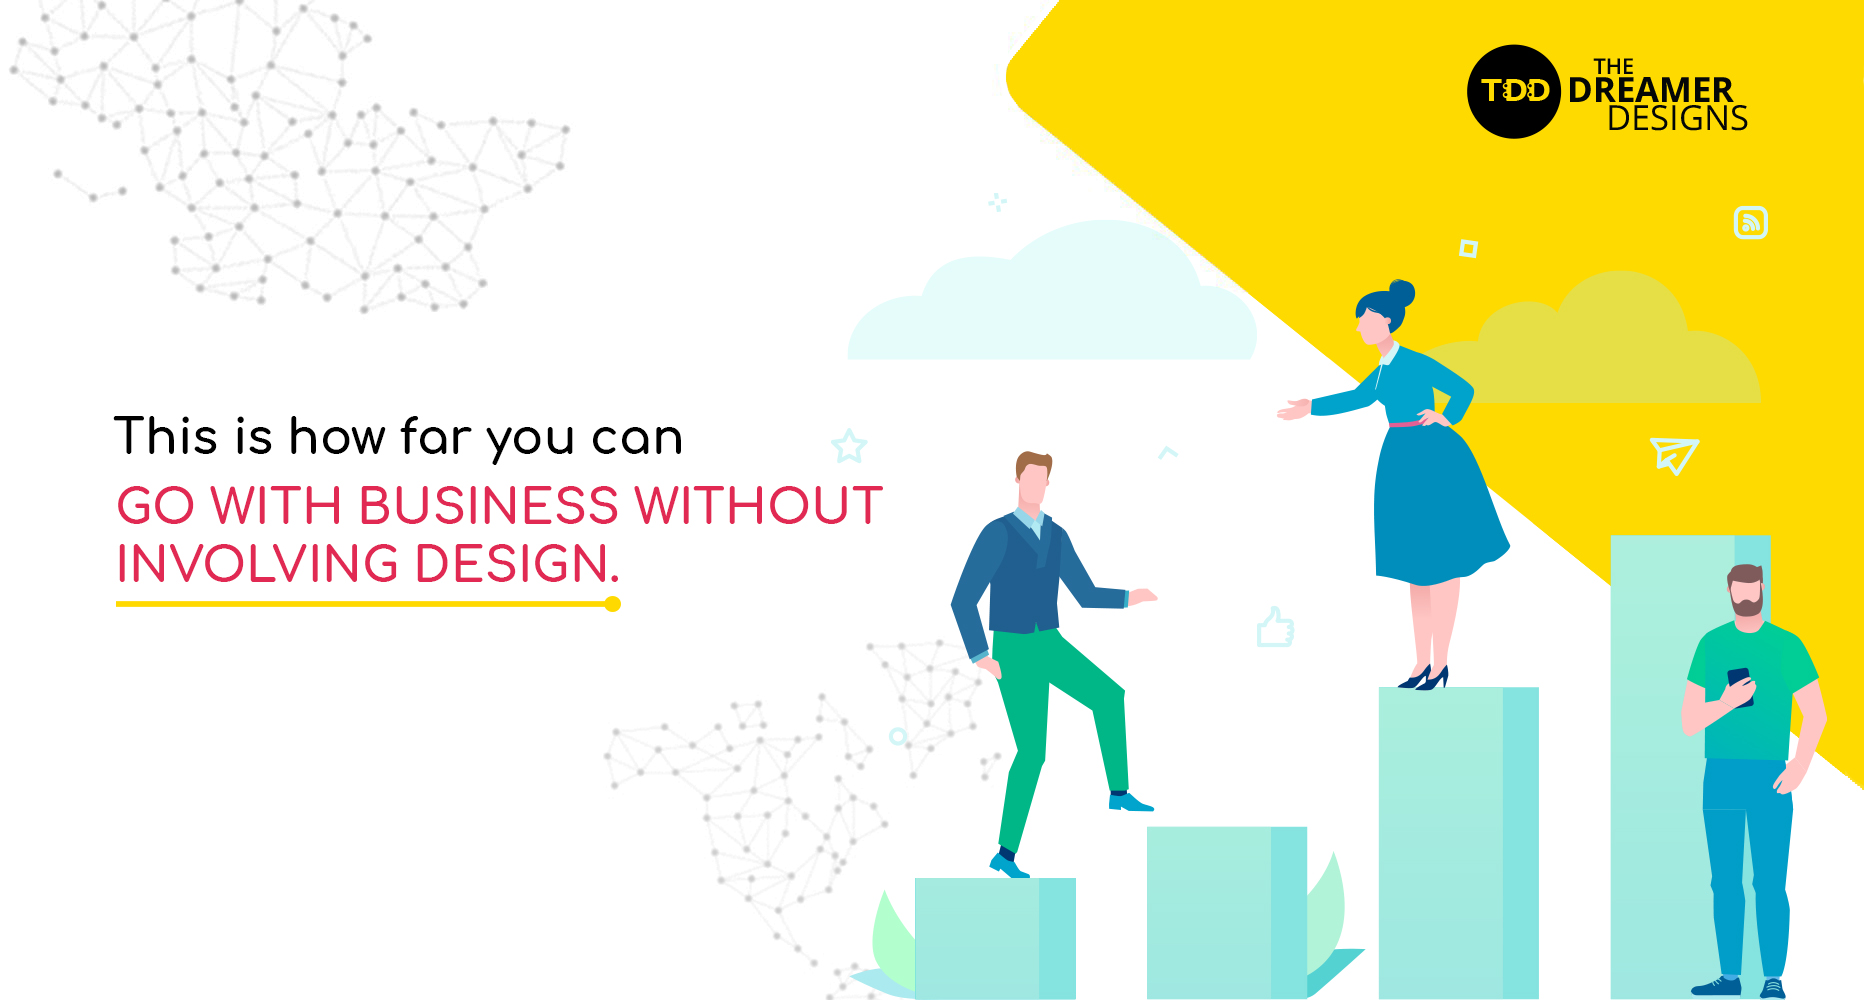 This is how far you can go with business without involving design.